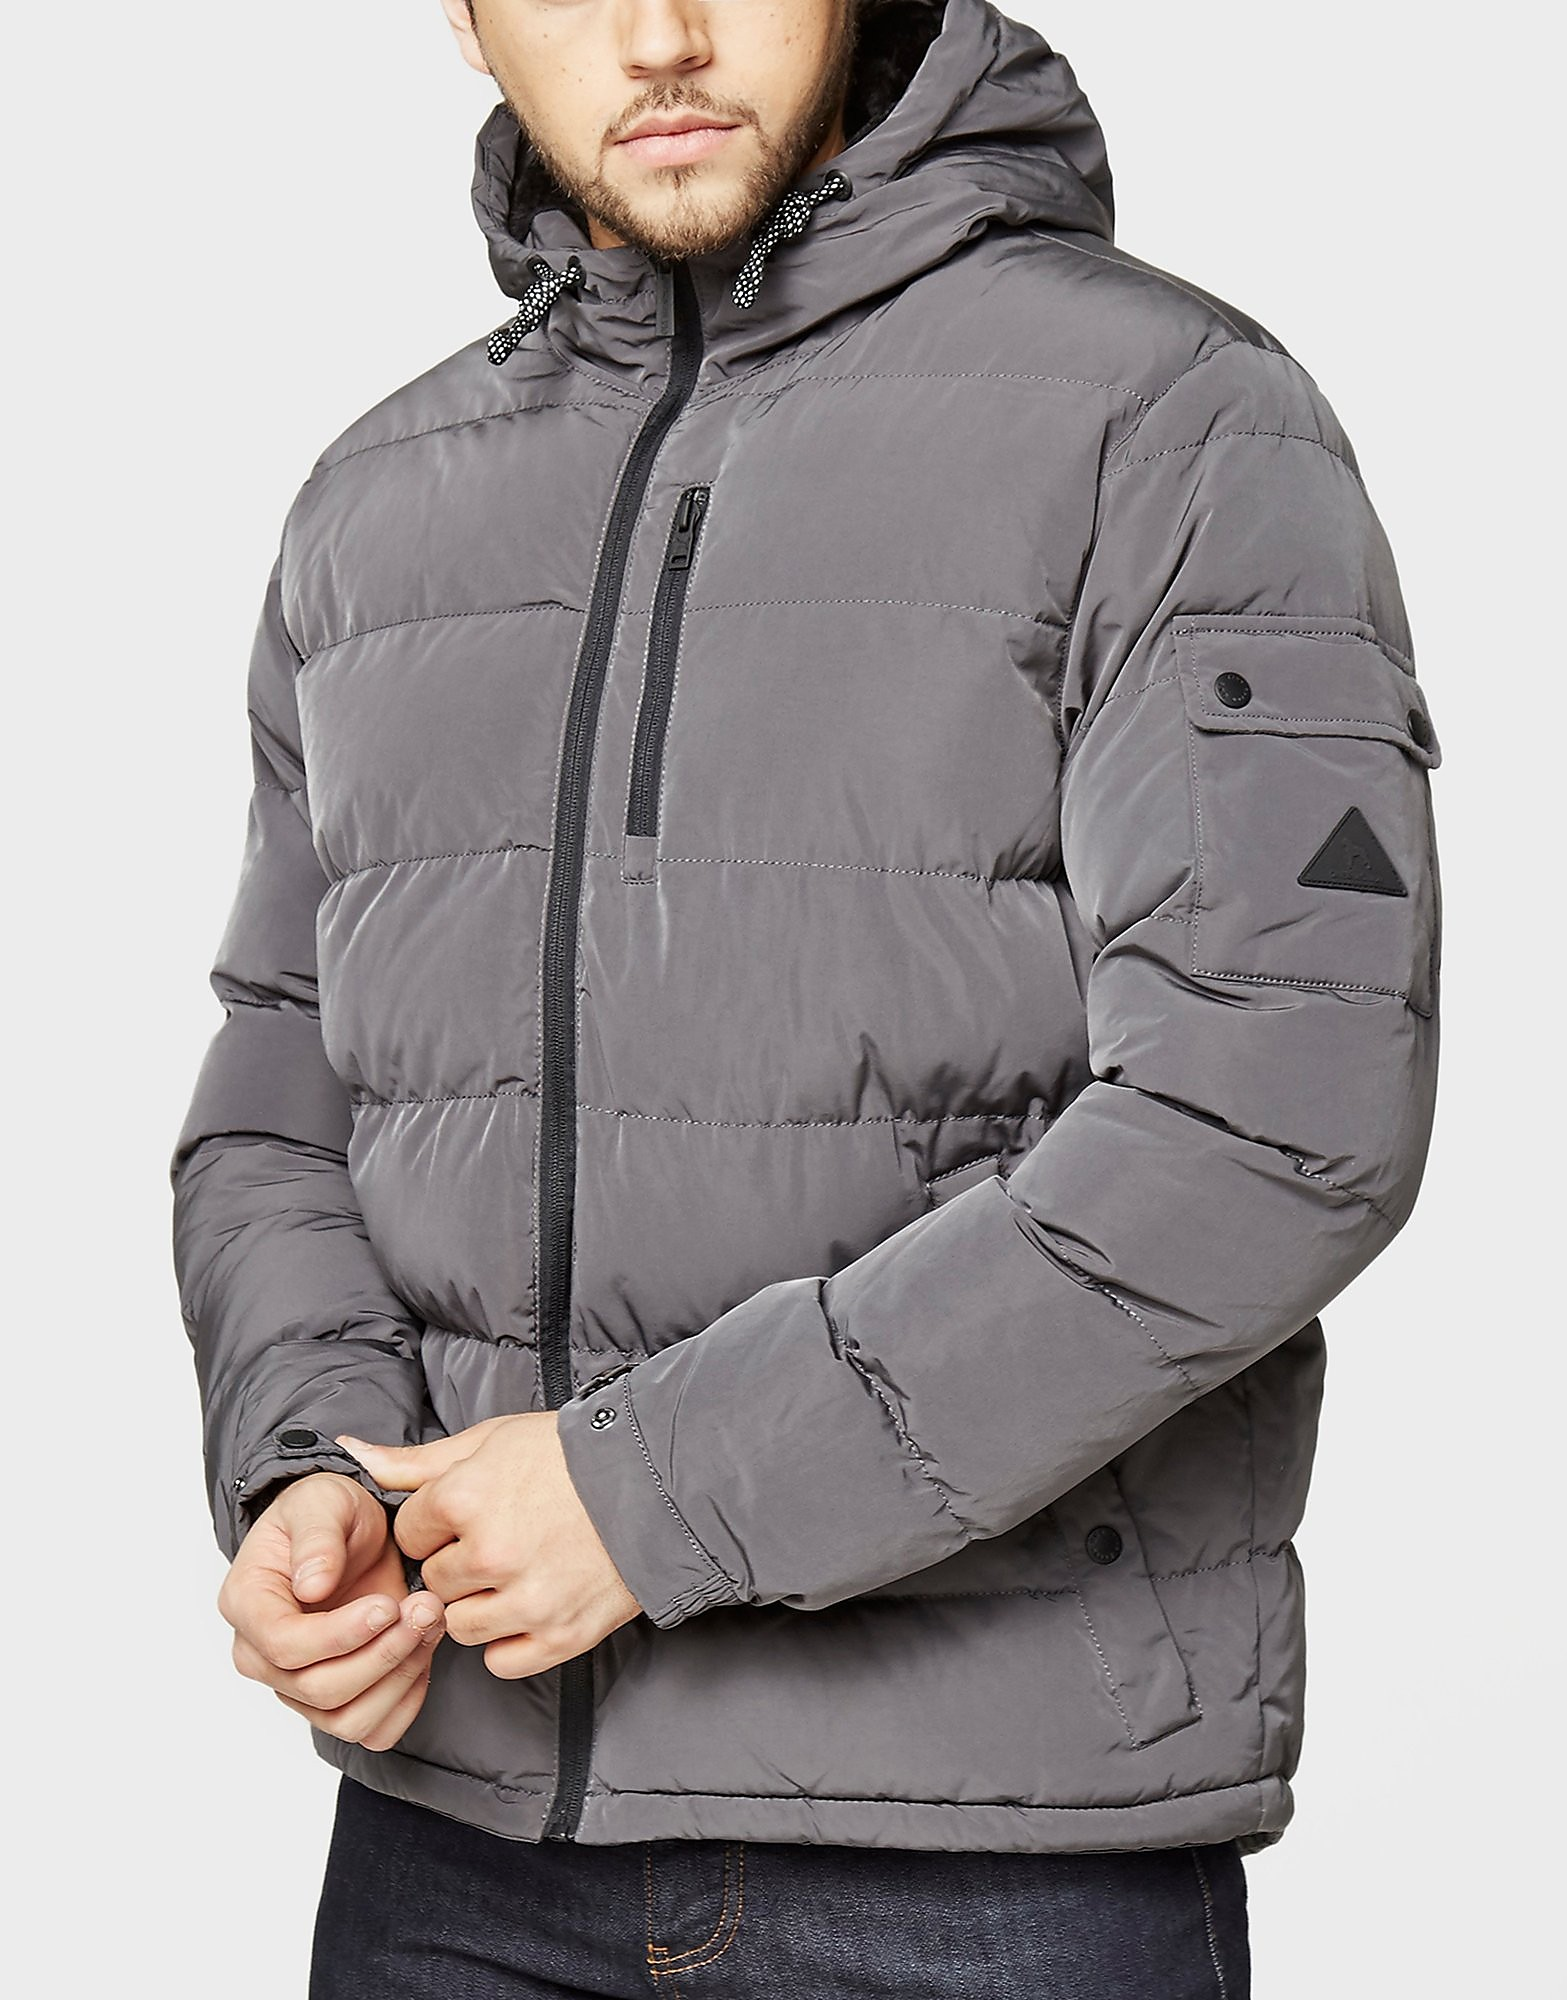 One True Saxon Bubble jacket - Exclusive